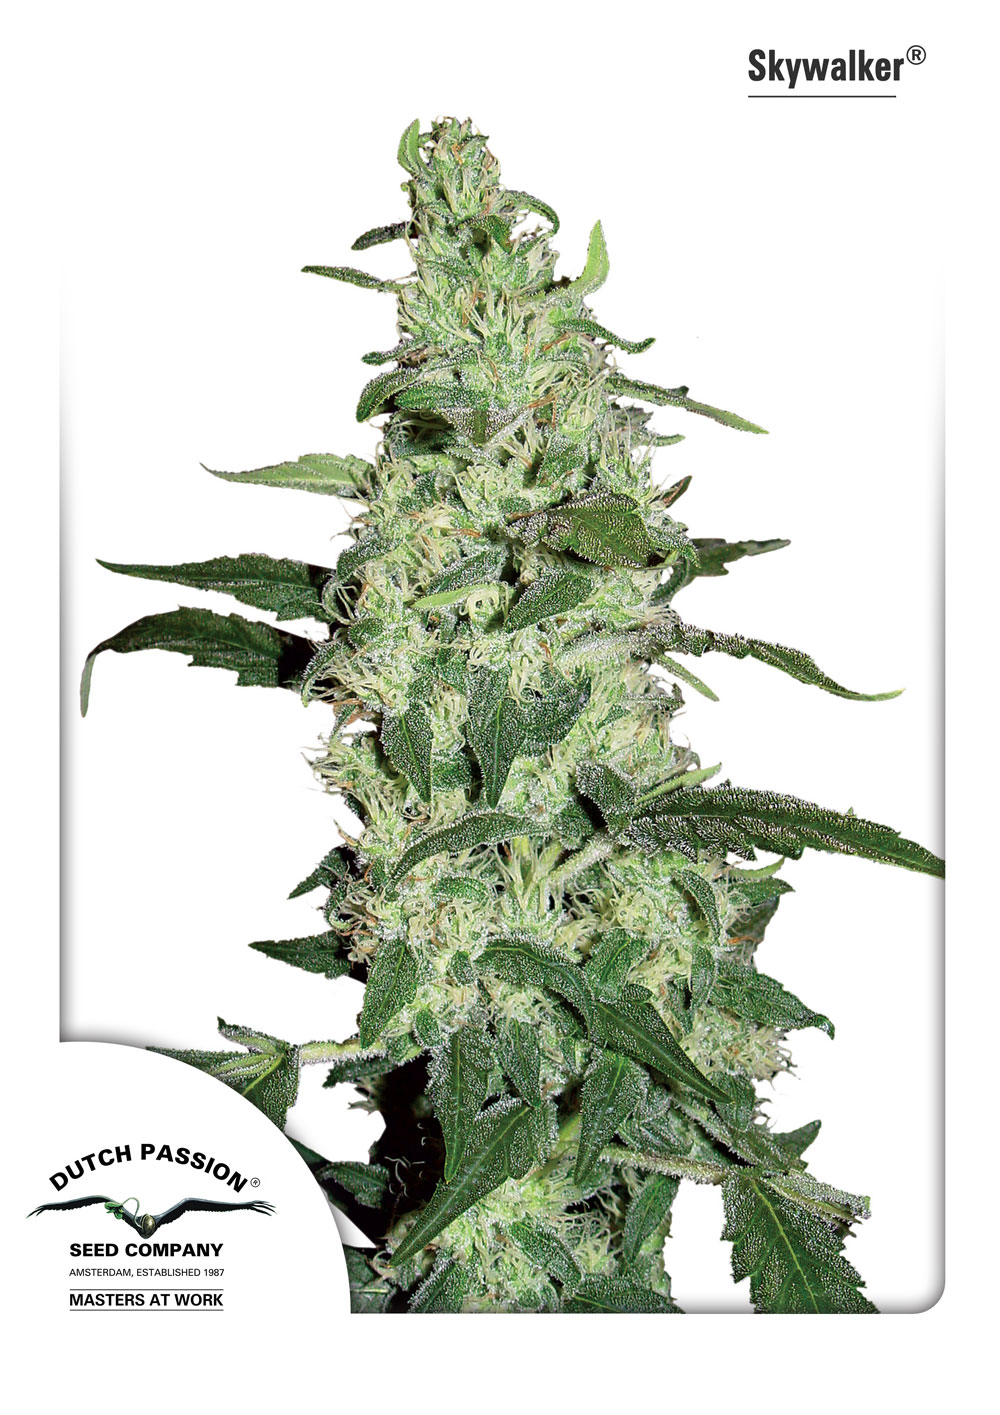 Recenzja Odmiany Skywalker od Dutch Passion, Dutch Seeds